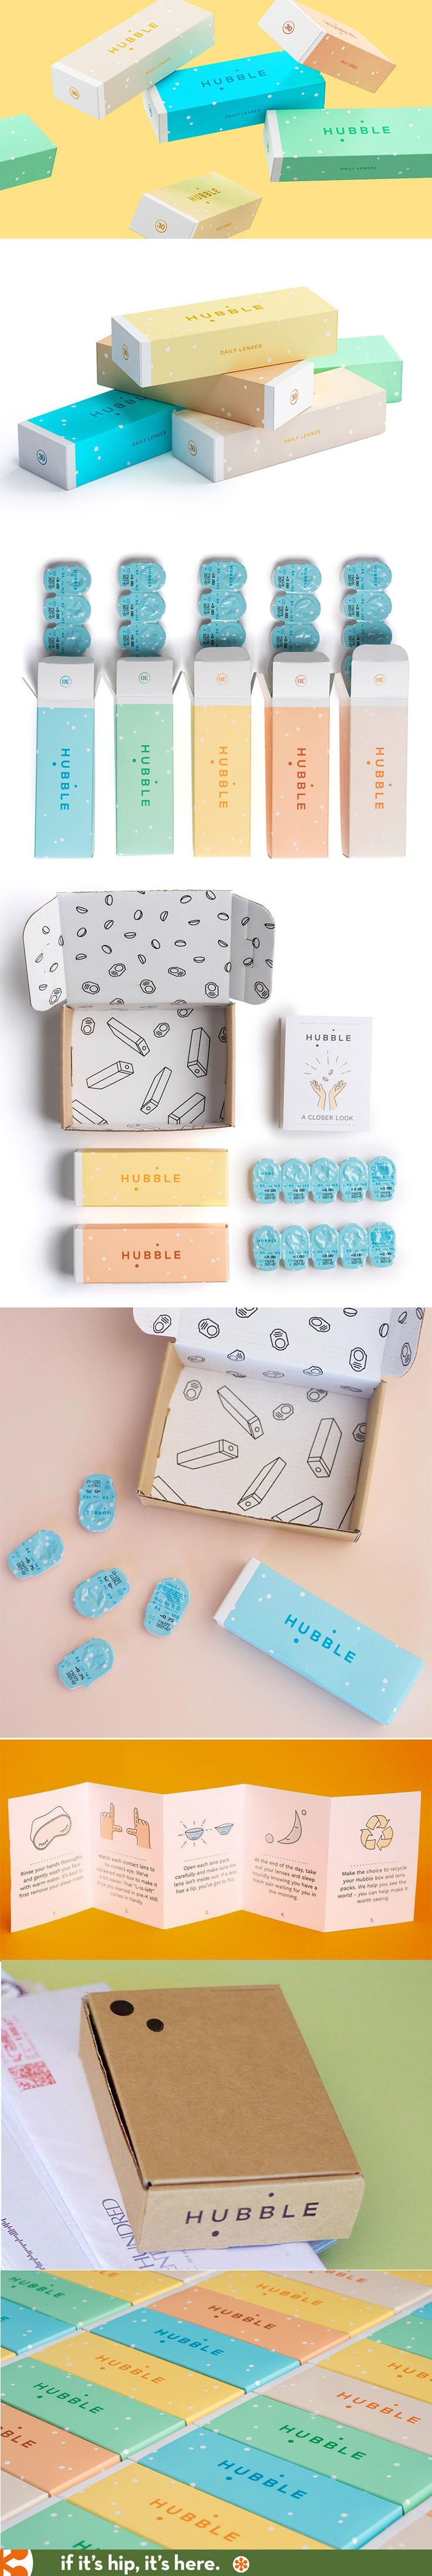 Packaging box design ideas